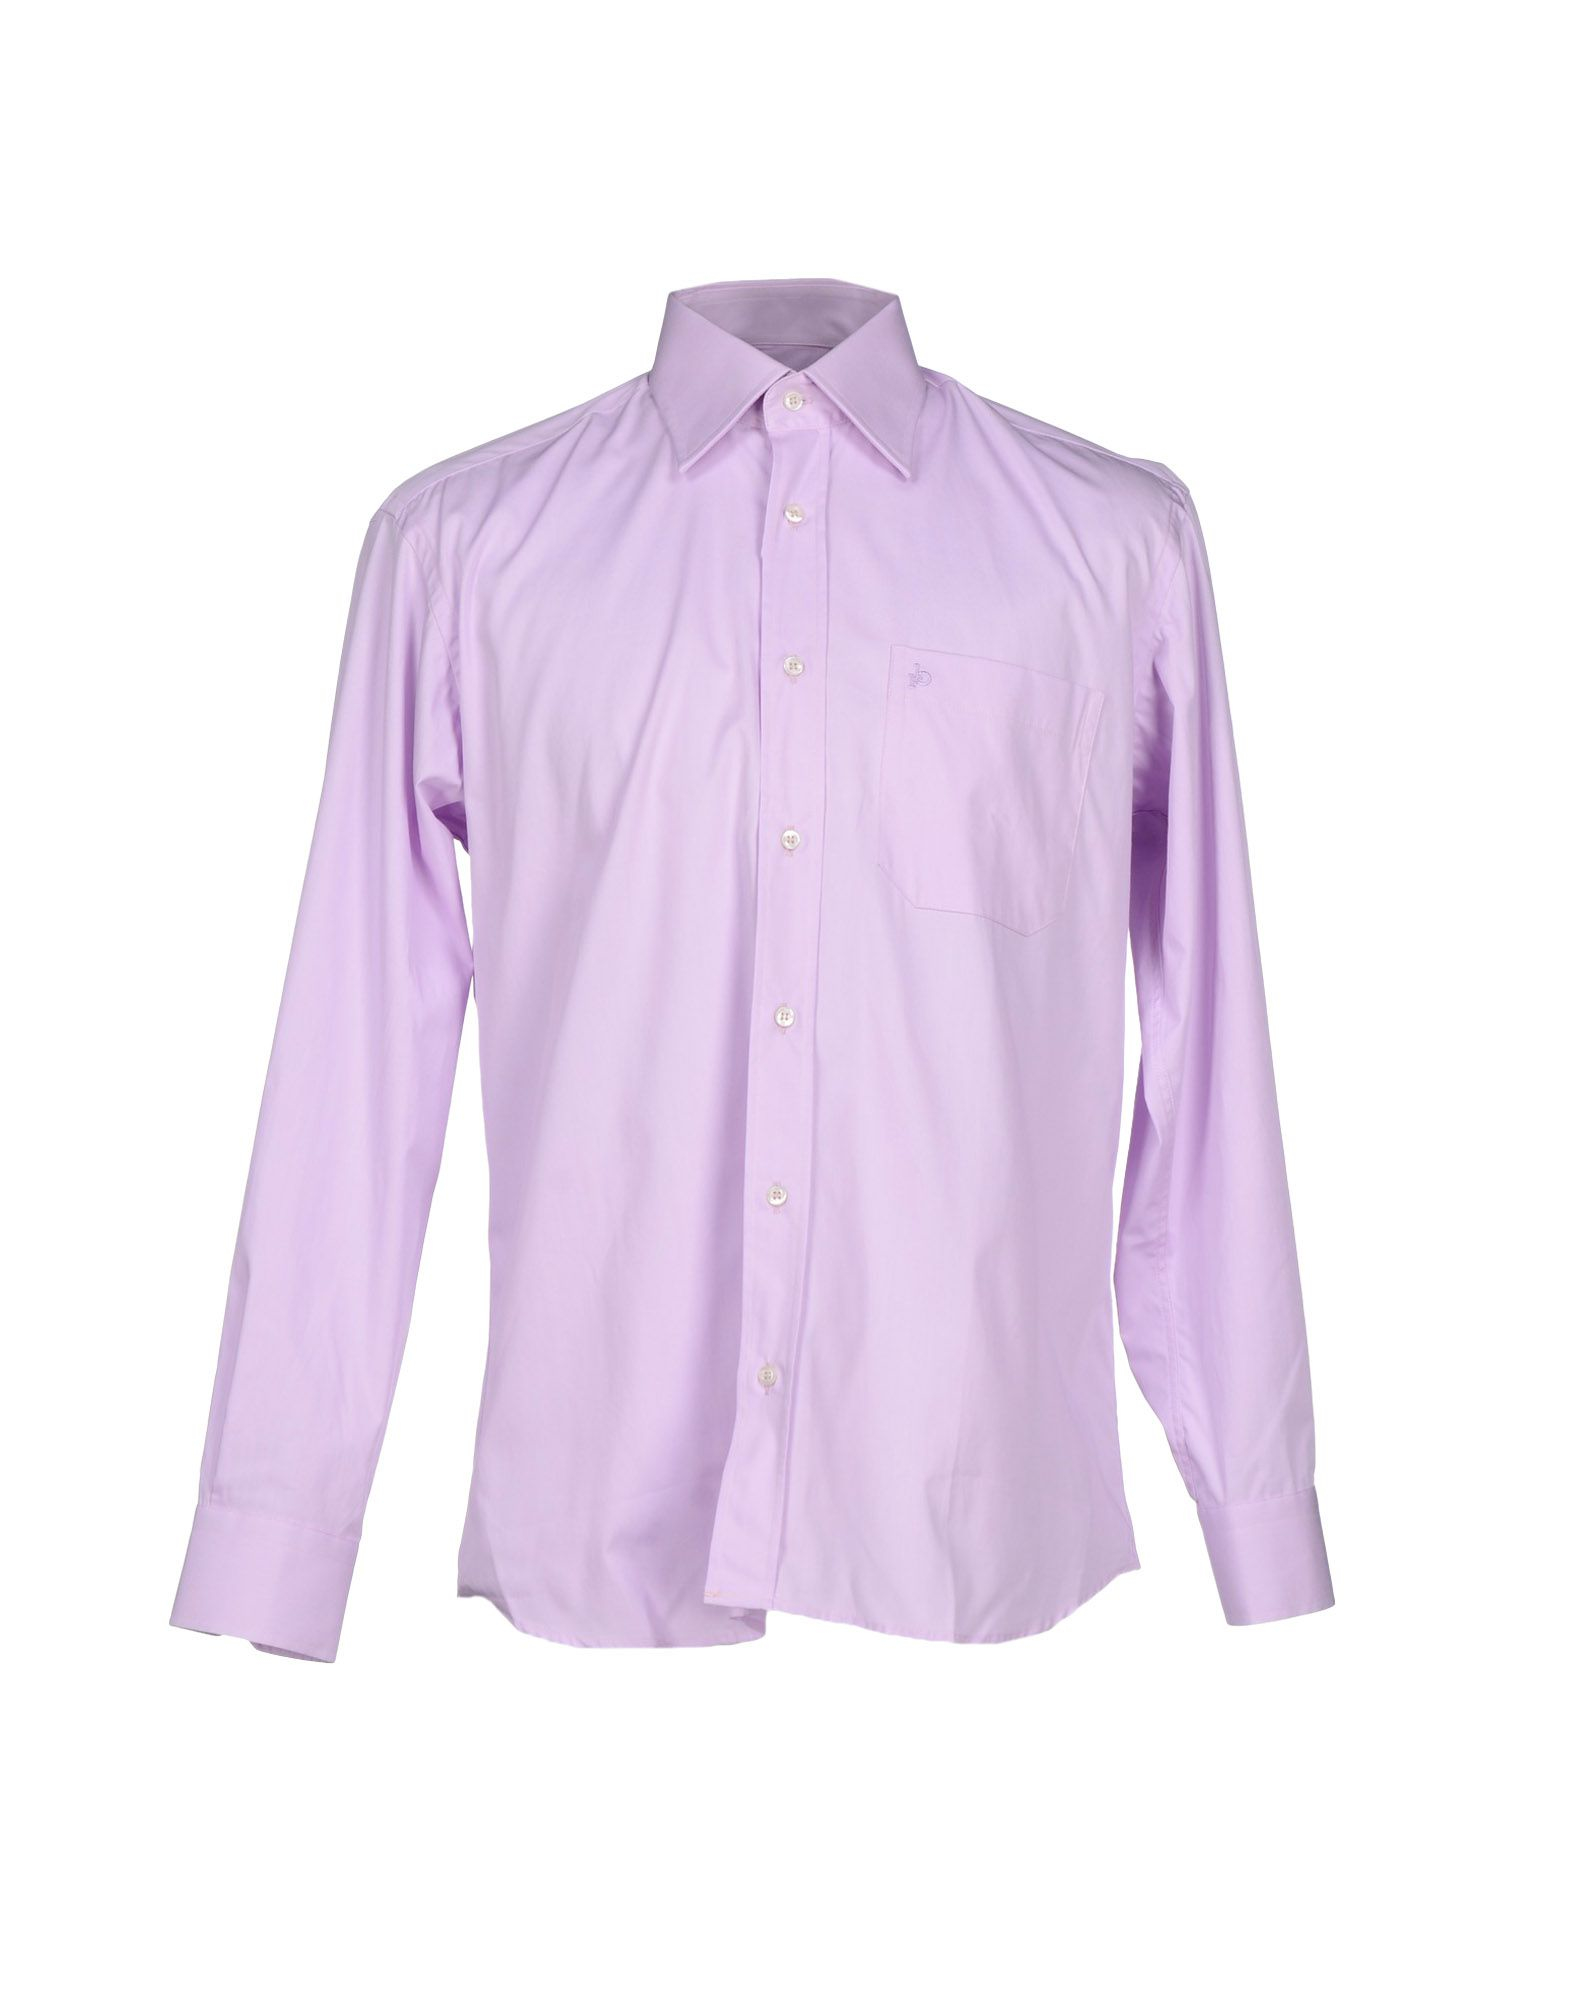 Roccobarocco shirt in purple for men light purple lyst Light purple dress shirt men